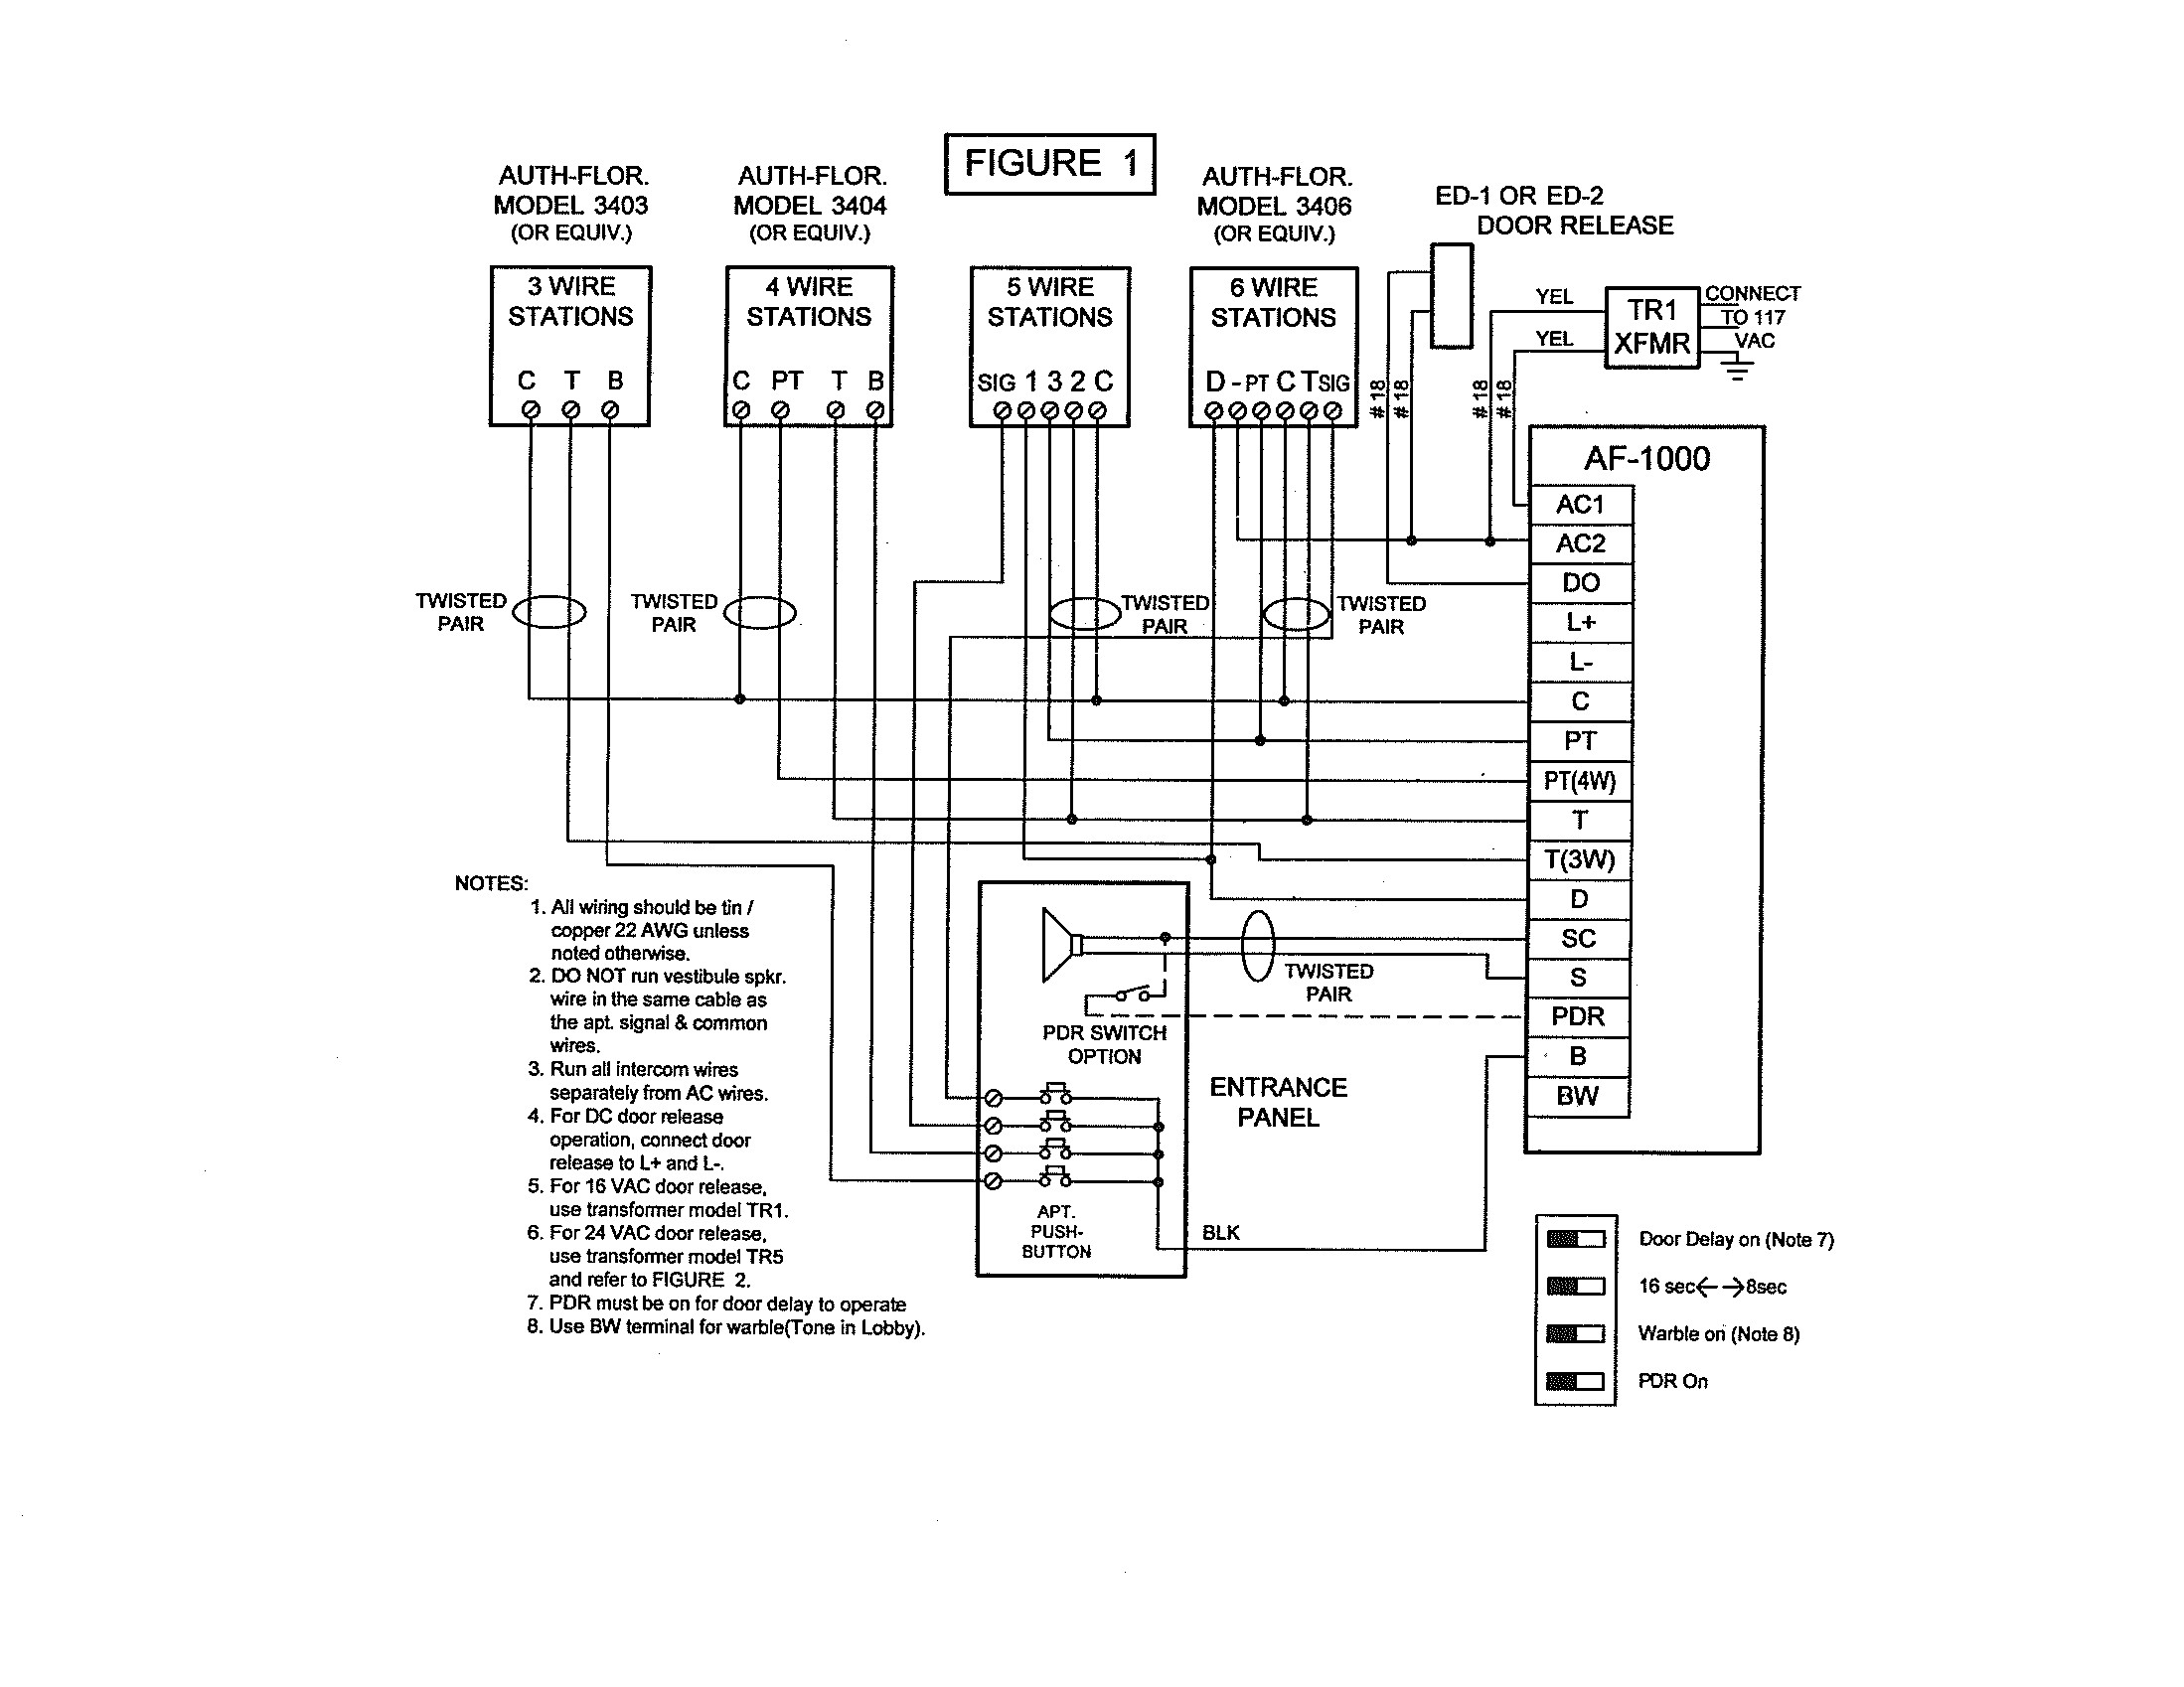 Pacific Electronics 3404 4 Wire Plastic Intercom Station Wiring Schematics In Series 3403 Diagram